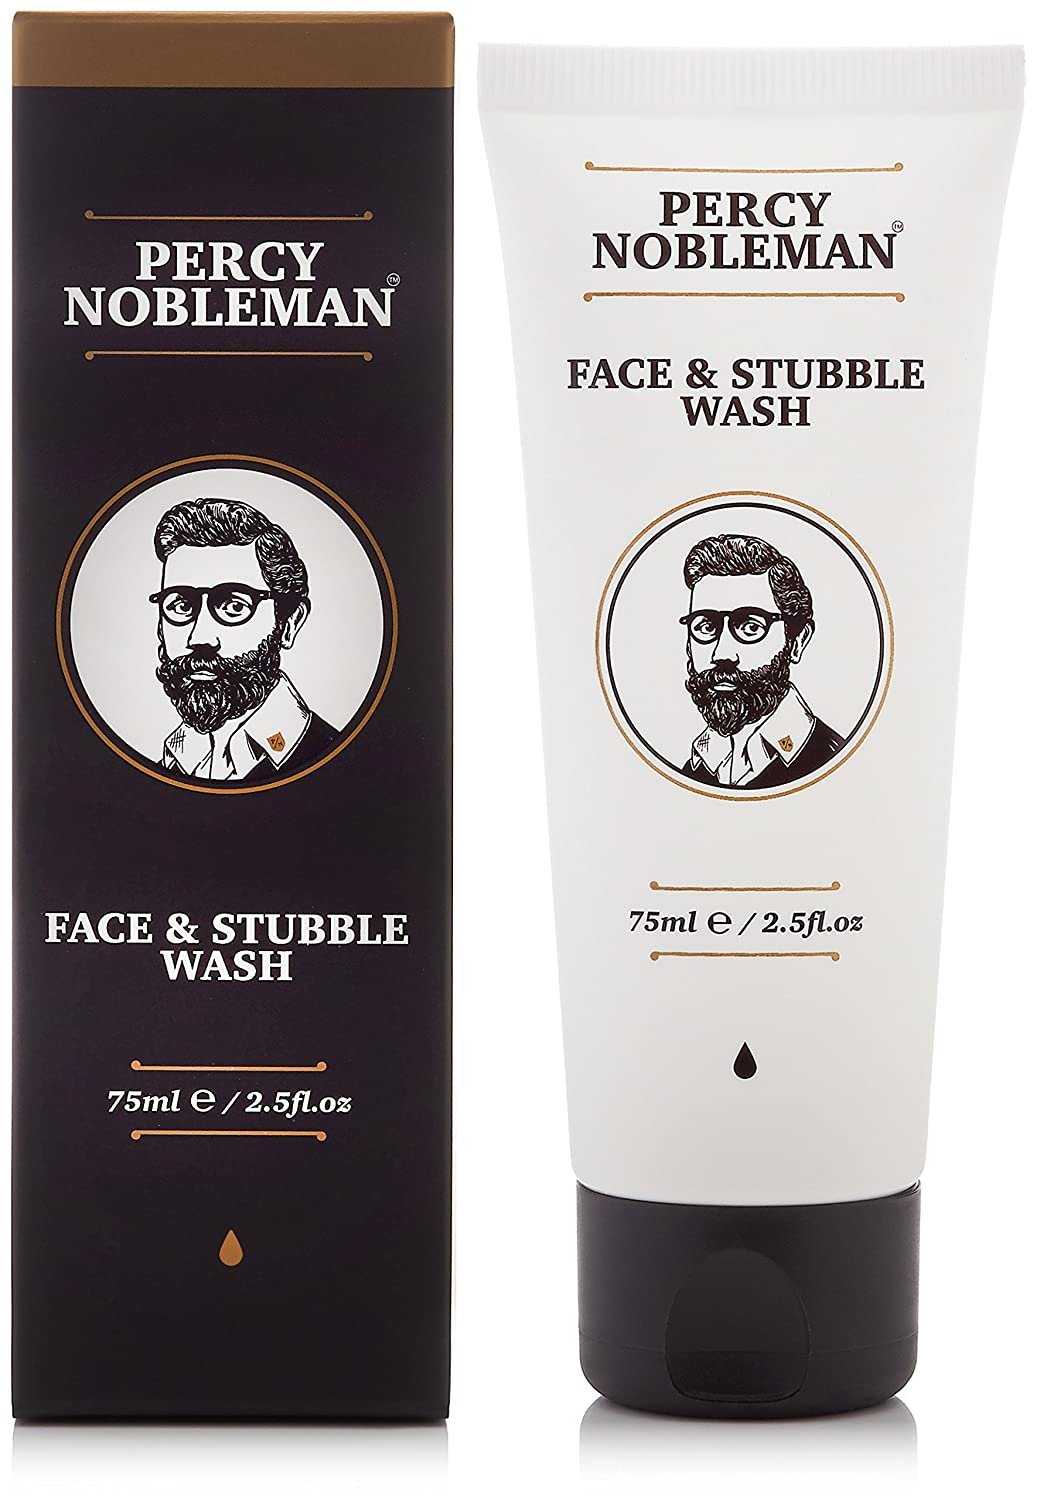 Percy Nobleman Face and Stubble Wash 75 ml. An Invigorating and hydrating Face Wash For Men. 03641